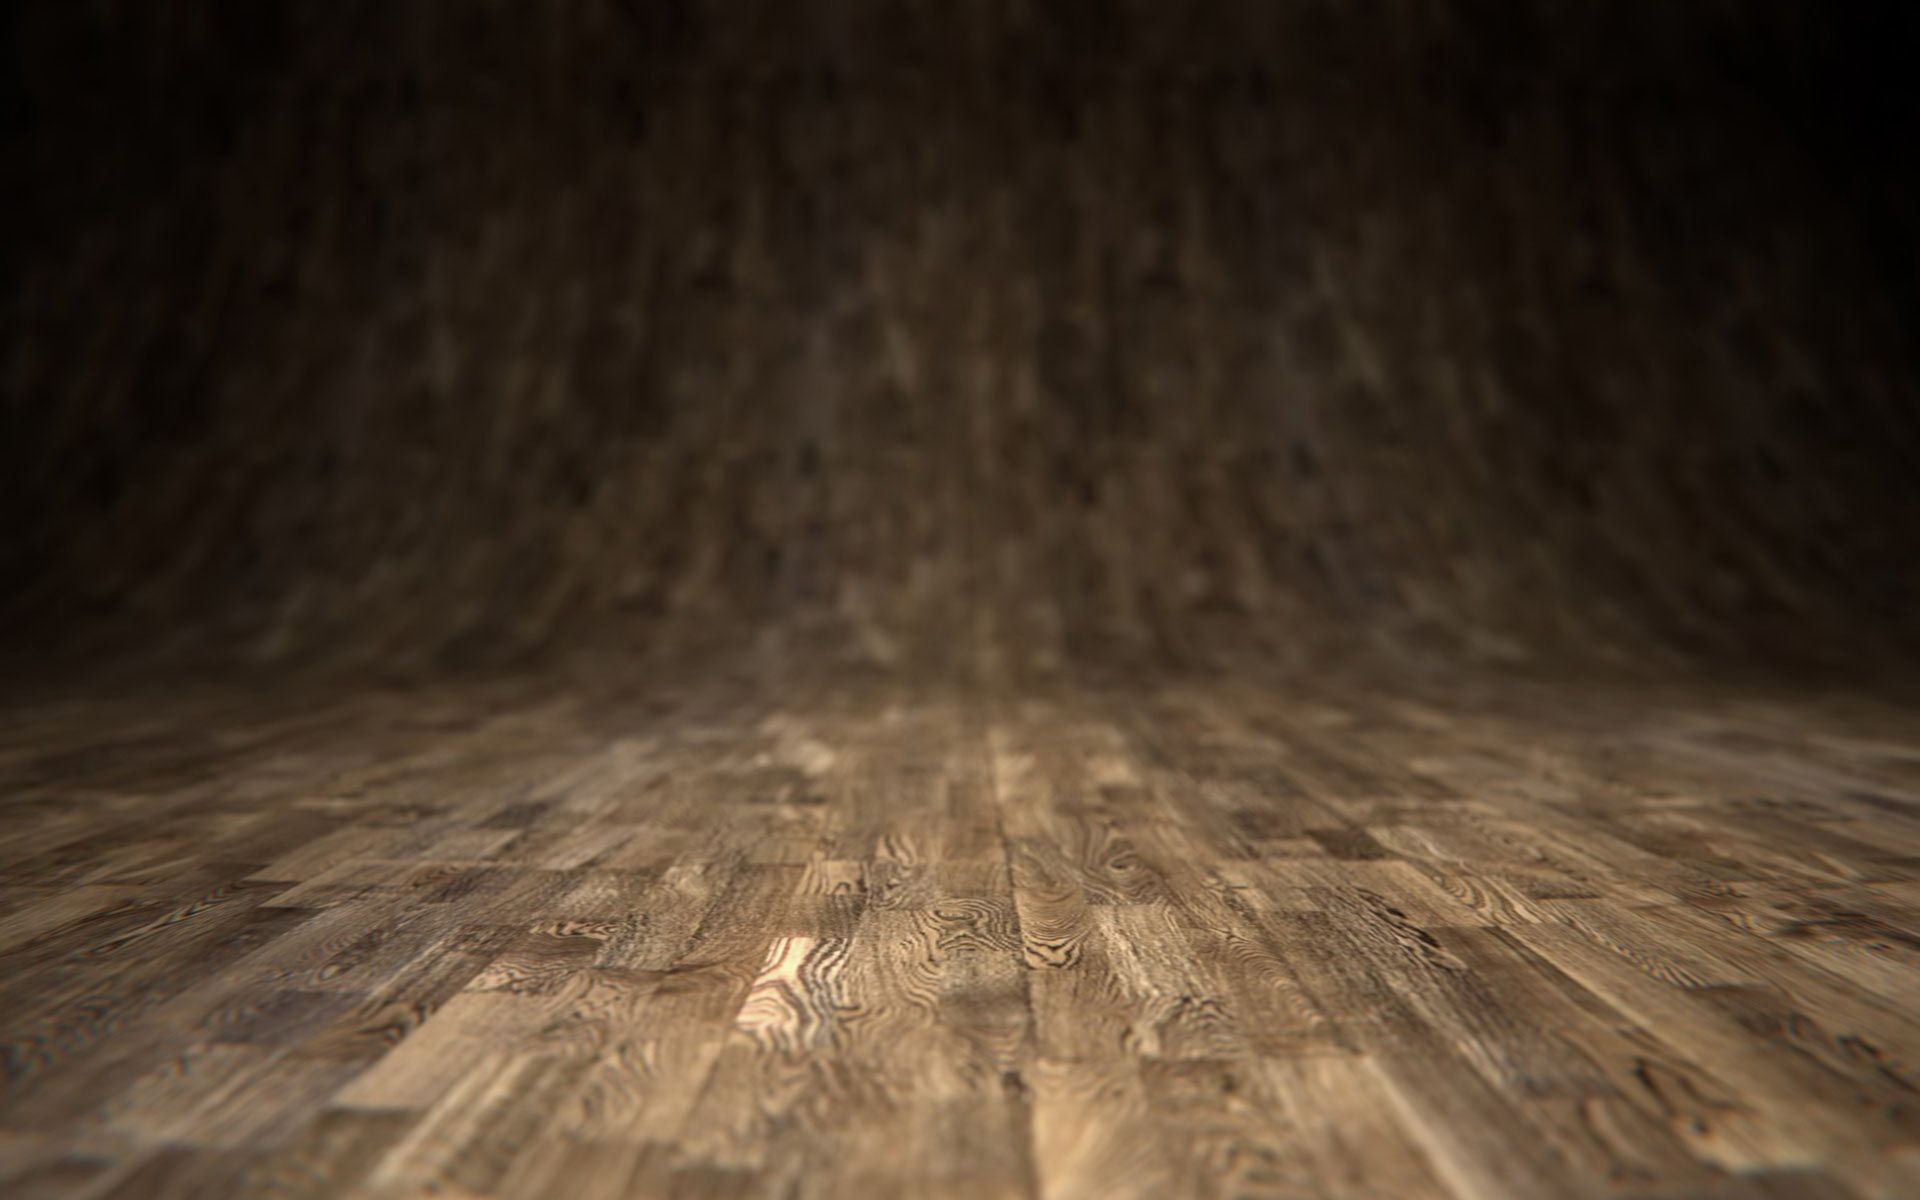 ubuntu 800x480jpg 19201200 wallpaper high resolution pinterest - Wood Grain Wall Paper